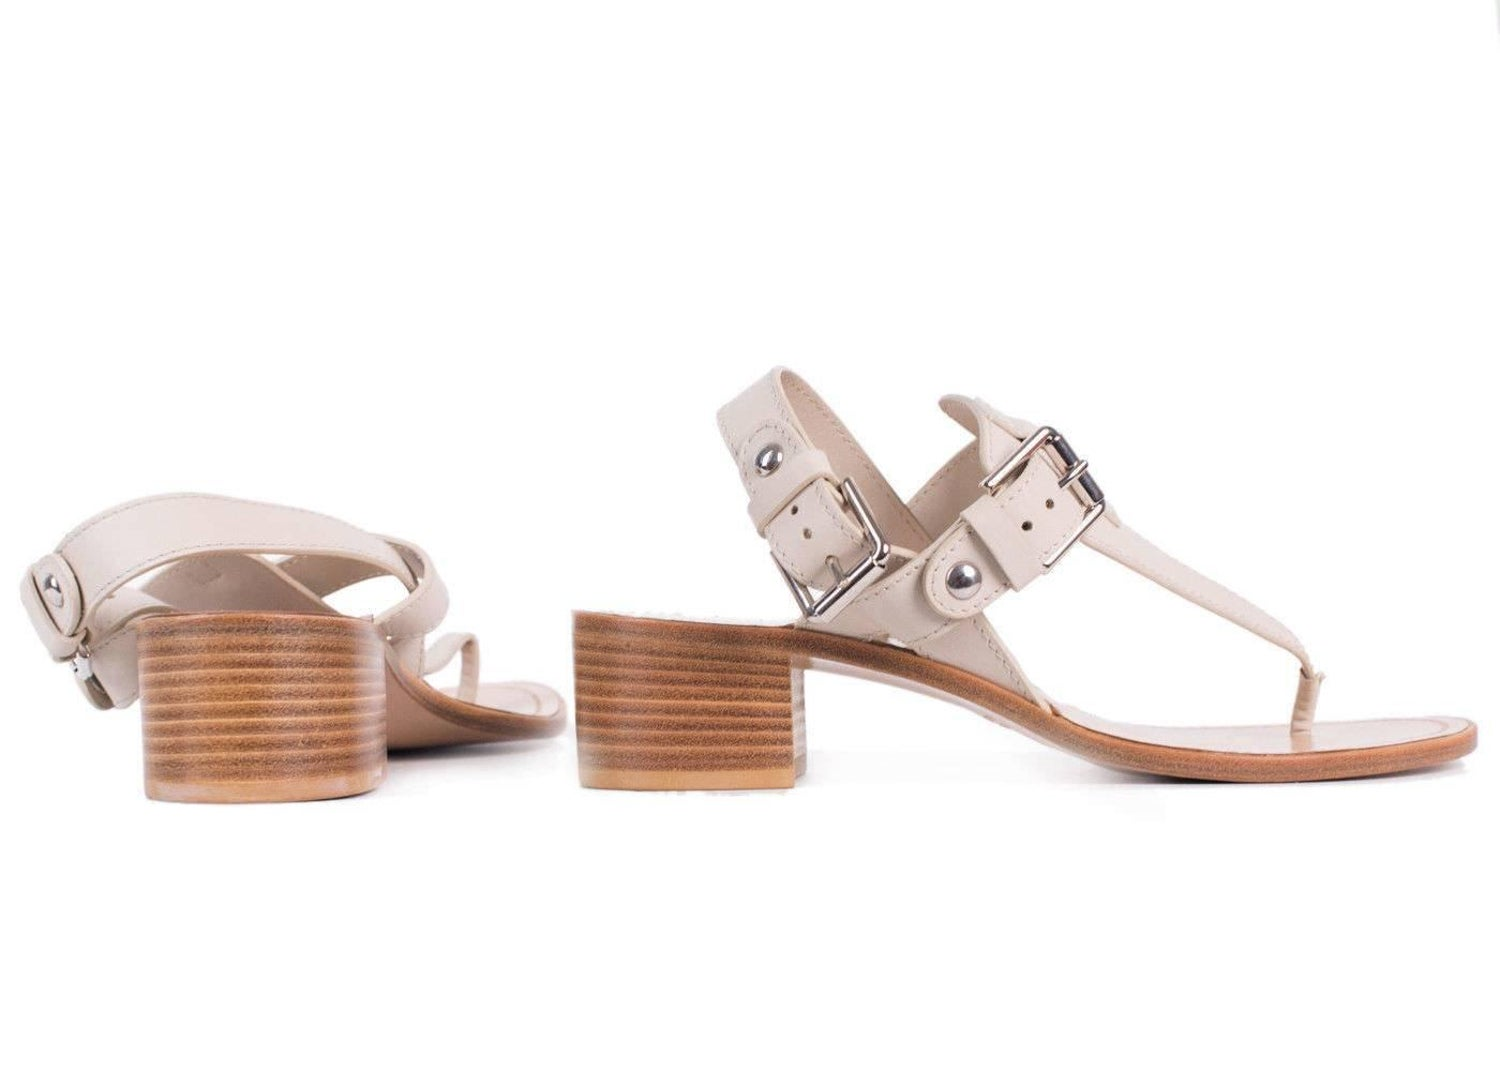 a50093ac925 Gianvito Rossi Nude Leather Buckled Thong Sandal Heels For Sale at 1stdibs